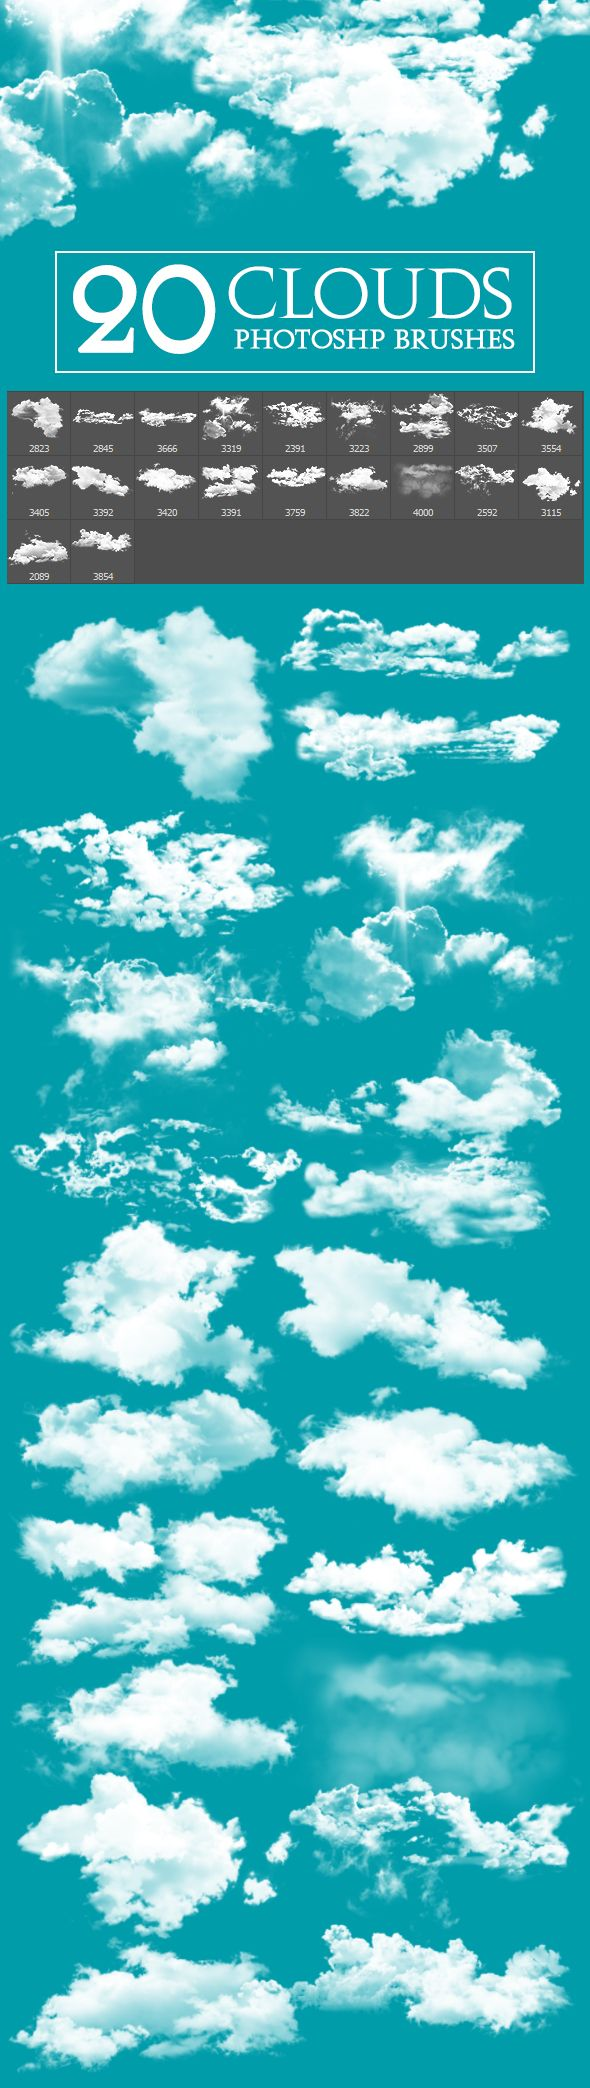 20 Cloud Brushes for Photoshop